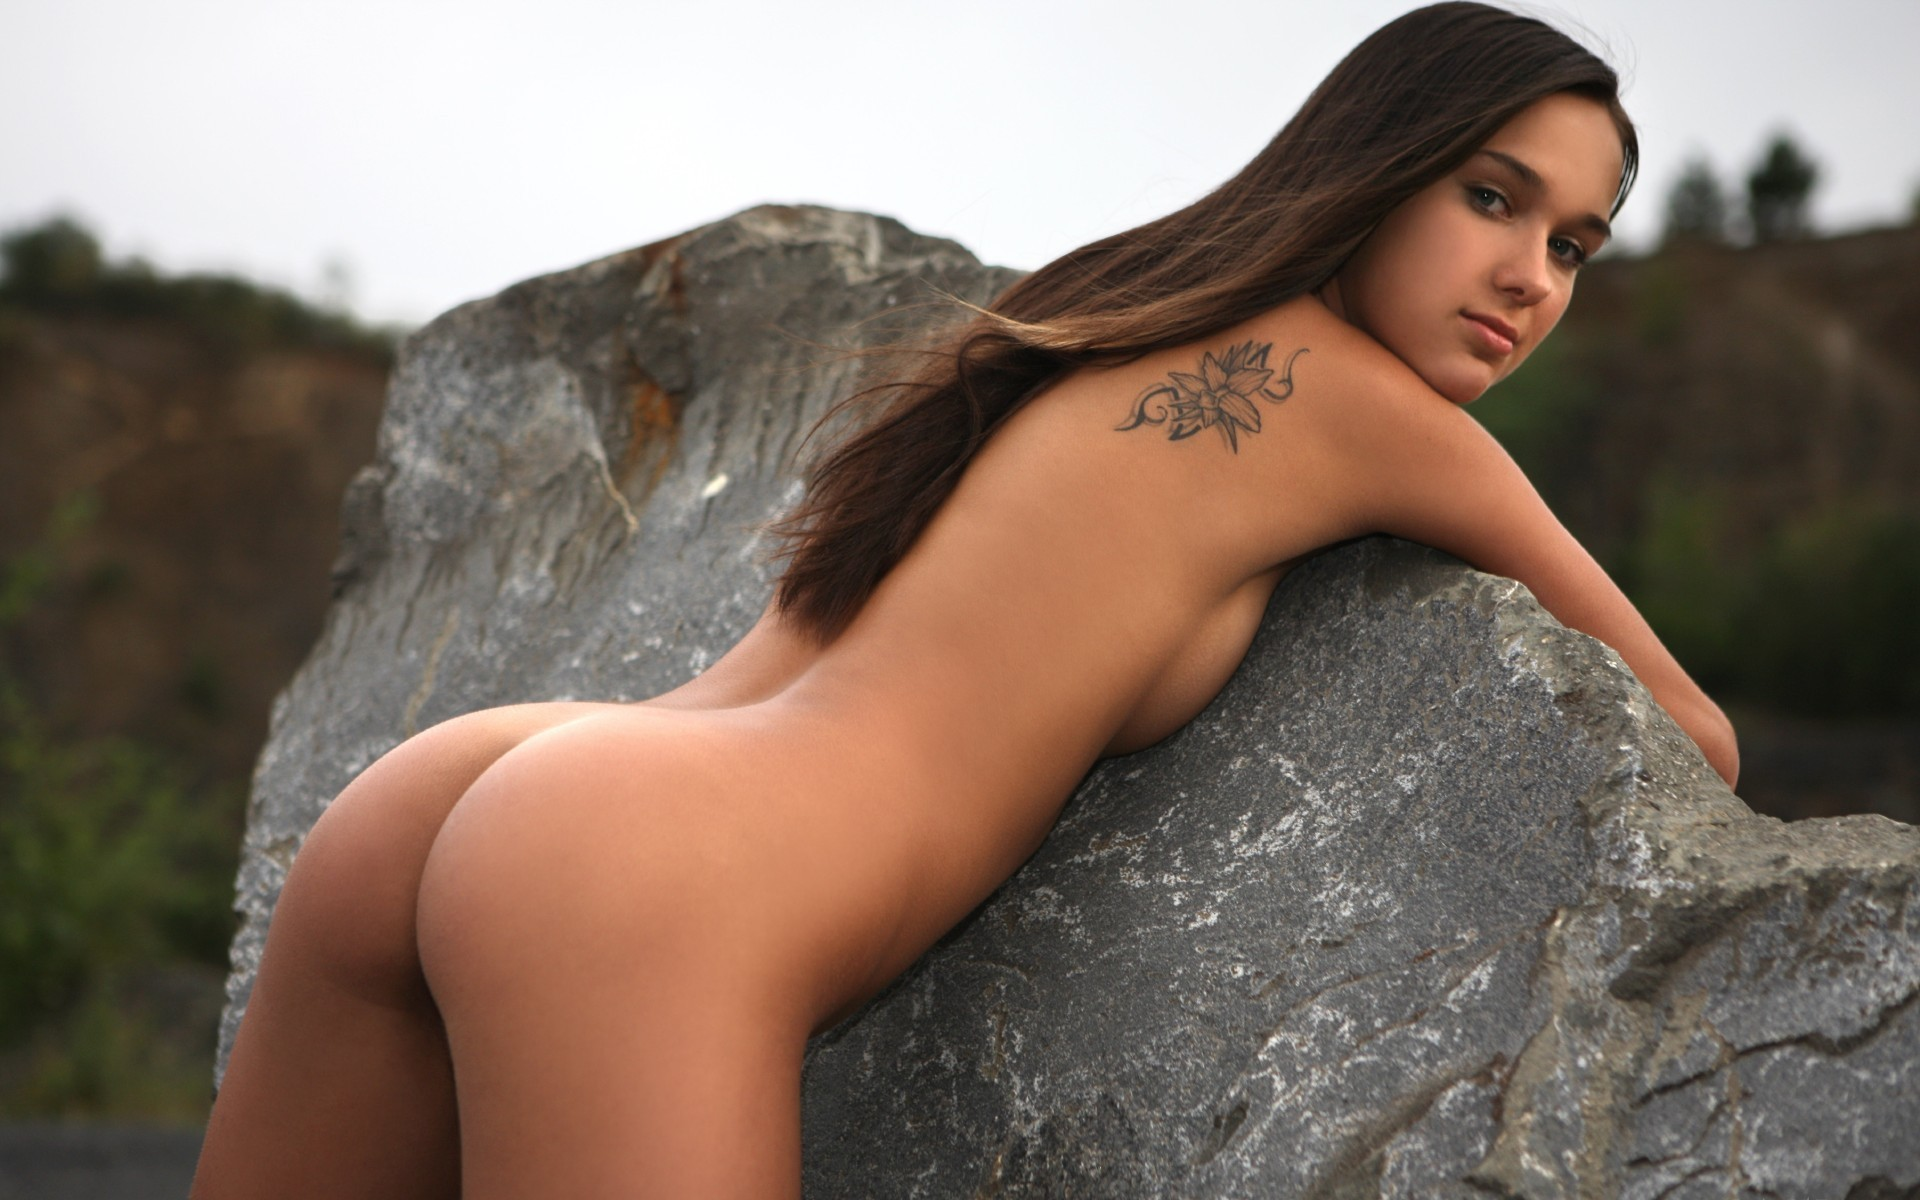 beautiful-butts-on-beautiful-nude-women-picture